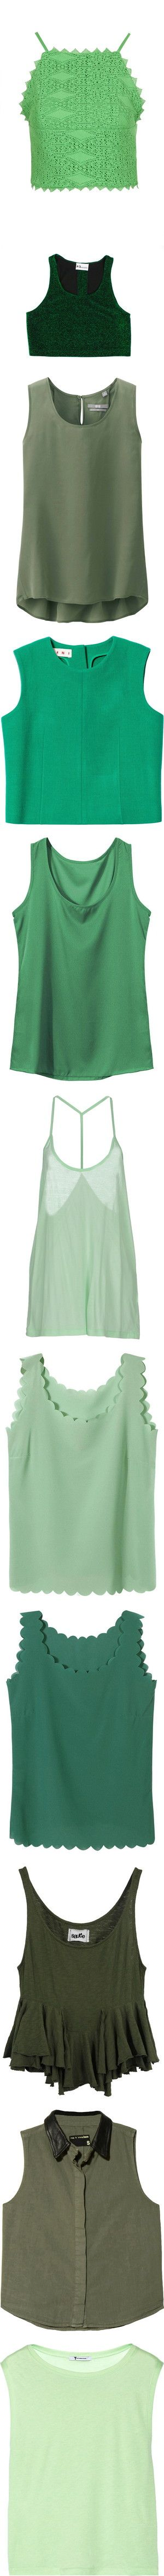 Green / Mint Clothes, objects & fillers by chelseapetrillo on Polyvore featuring GREEN, mint, mintgreen, women's fashion, tops, crop tops, bright green, crochet top, green jersey and high neck top